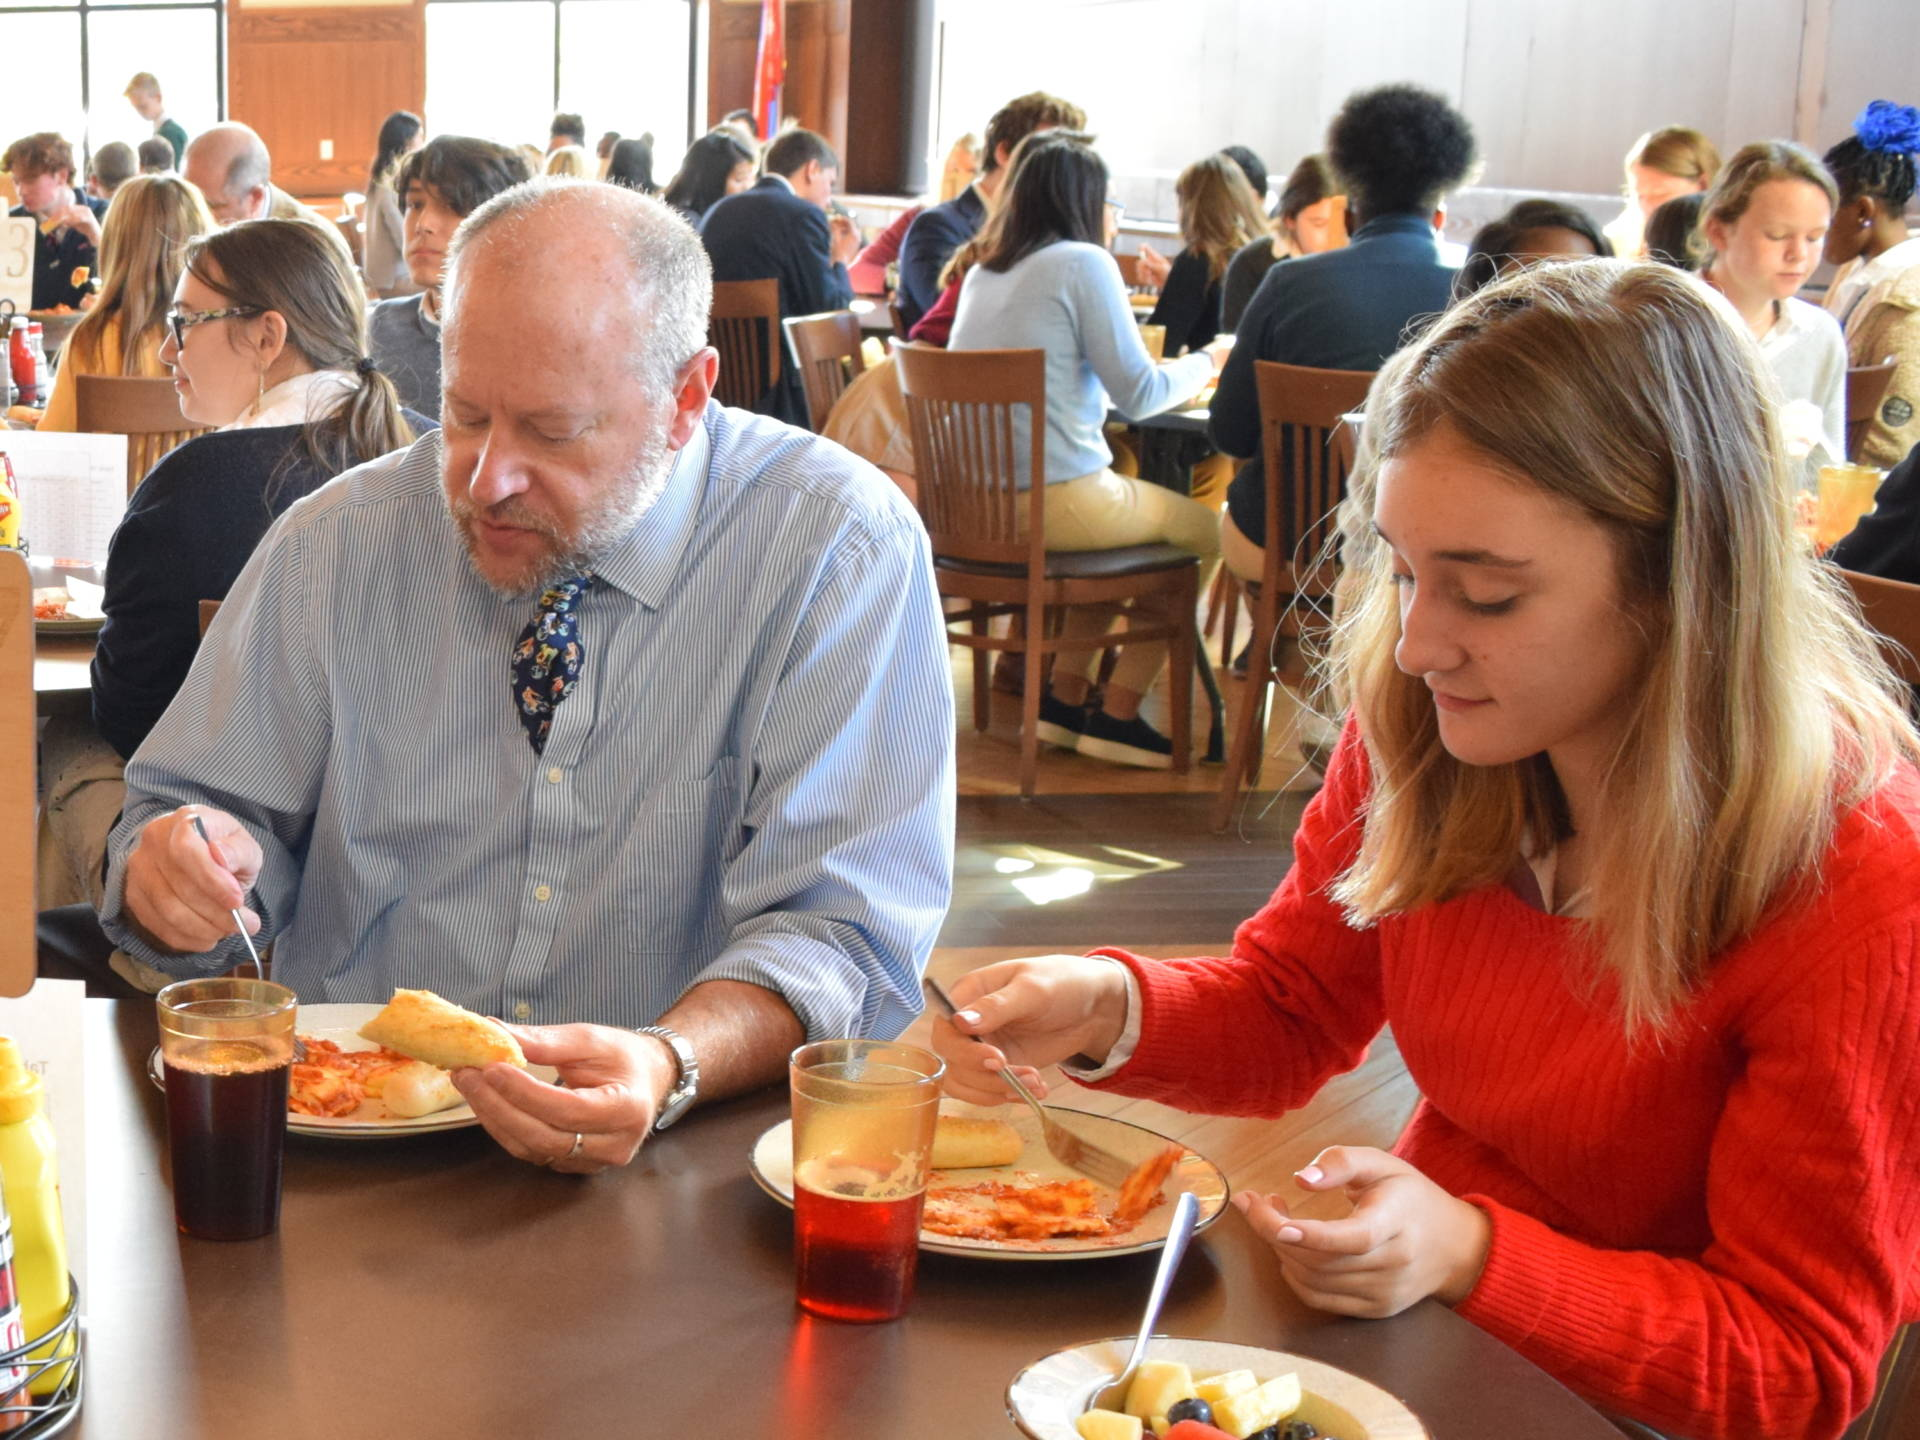 How Assigned Seats During Lunchtime Can Foster a Positive School Culture | MindShift